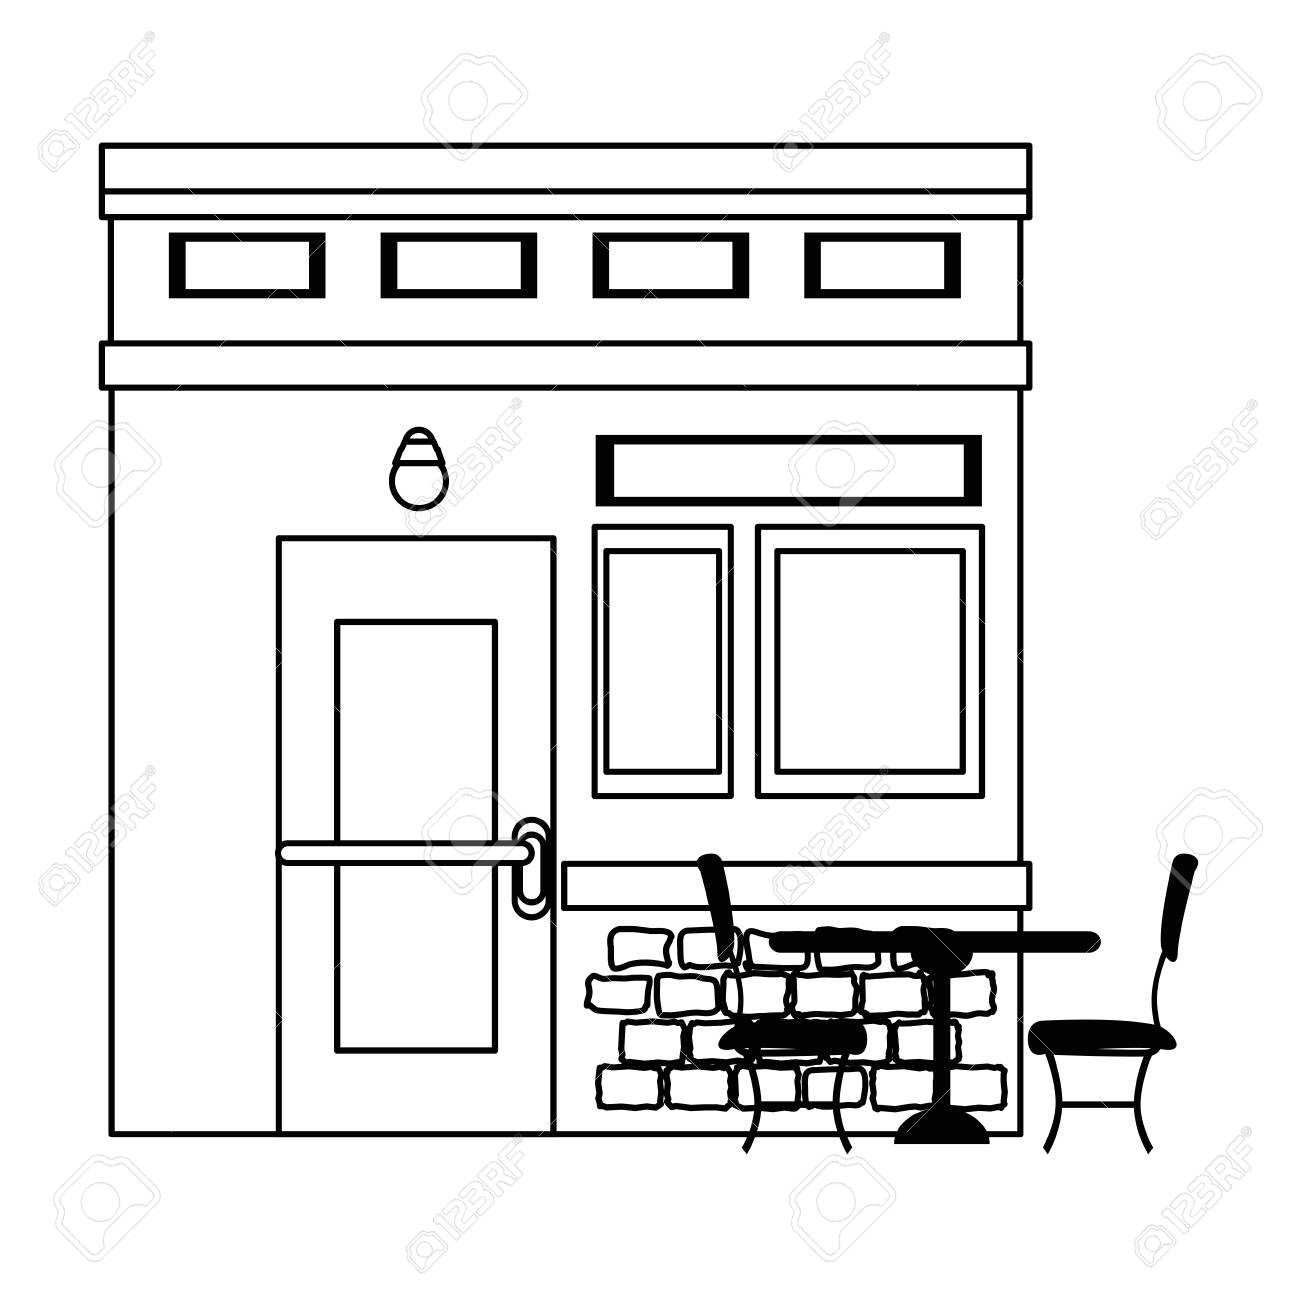 Restaurant Building Front Facade Vector Illustration Design Royalty Free Cliparts Vectors And Stock Illustration Image 100618097